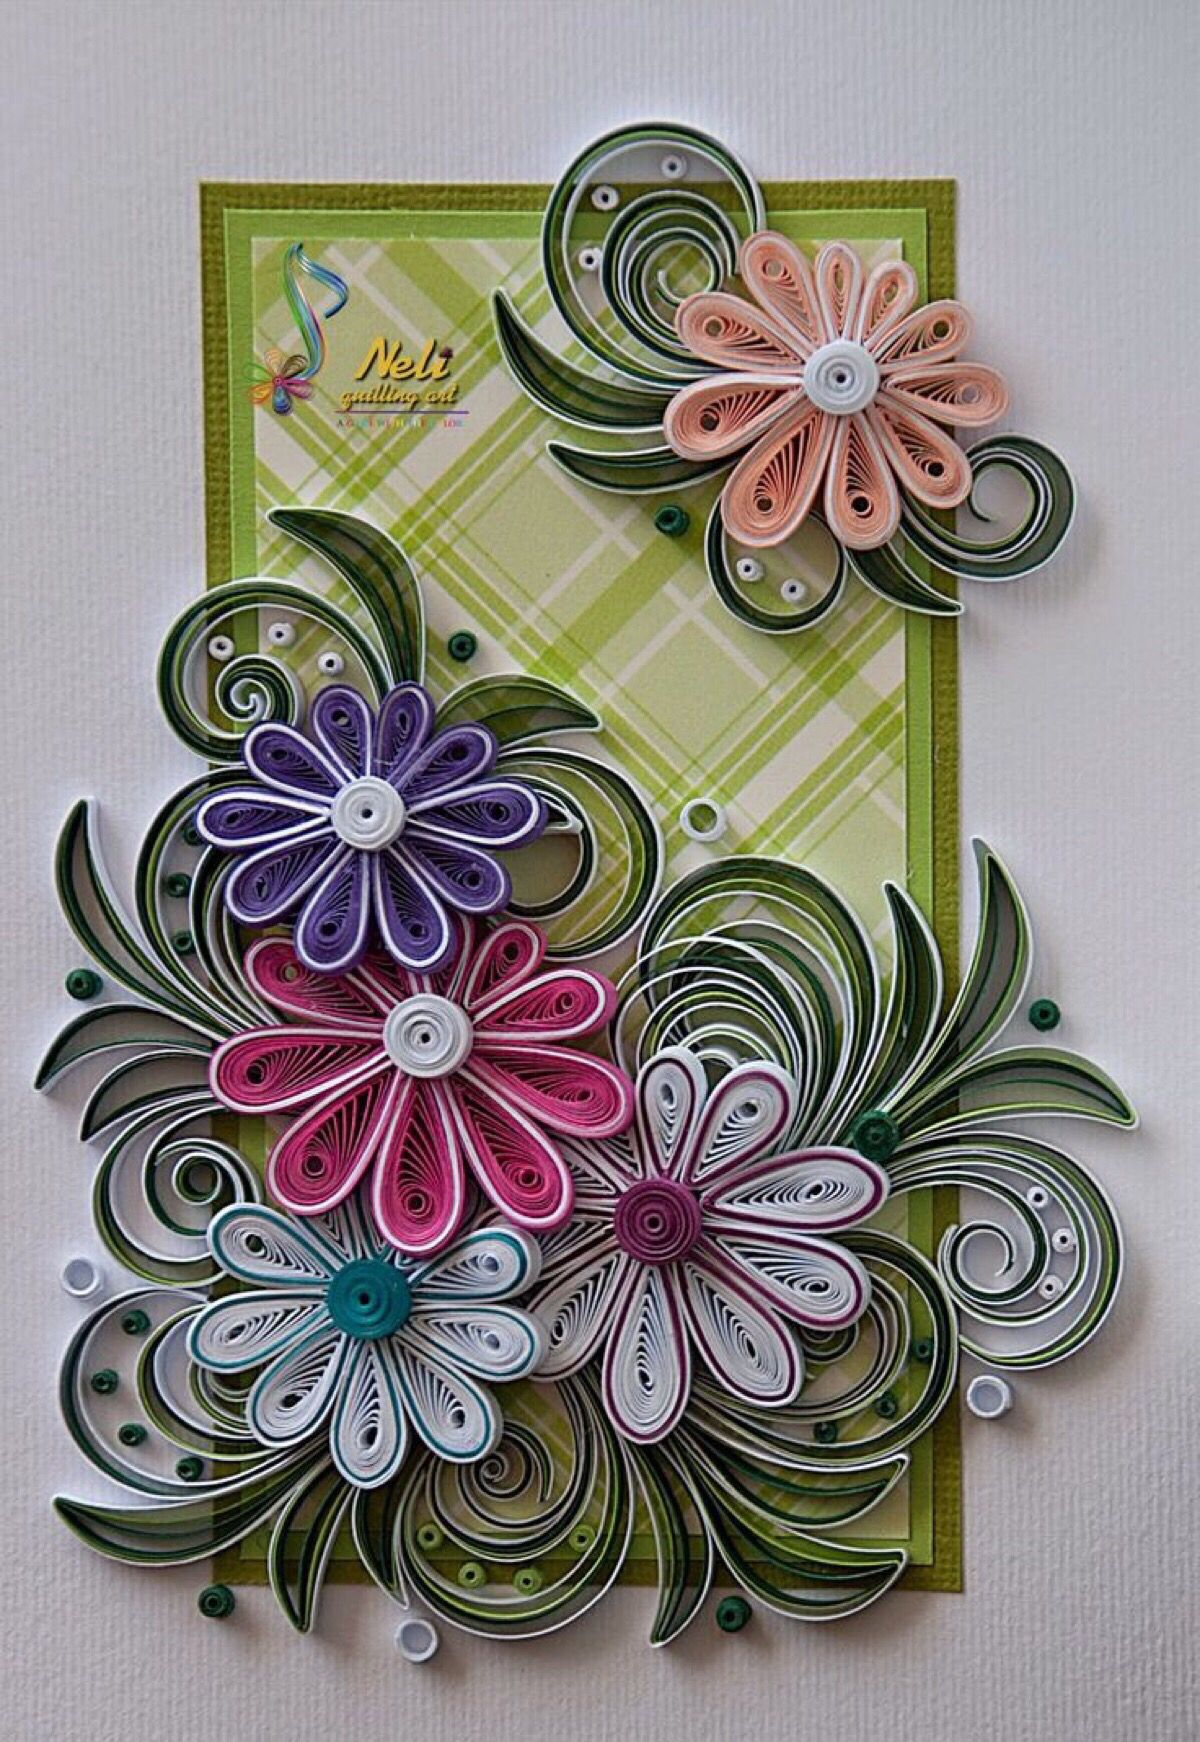 Pin by Hardware_hand tools on DIY (With images) | Quilling ...